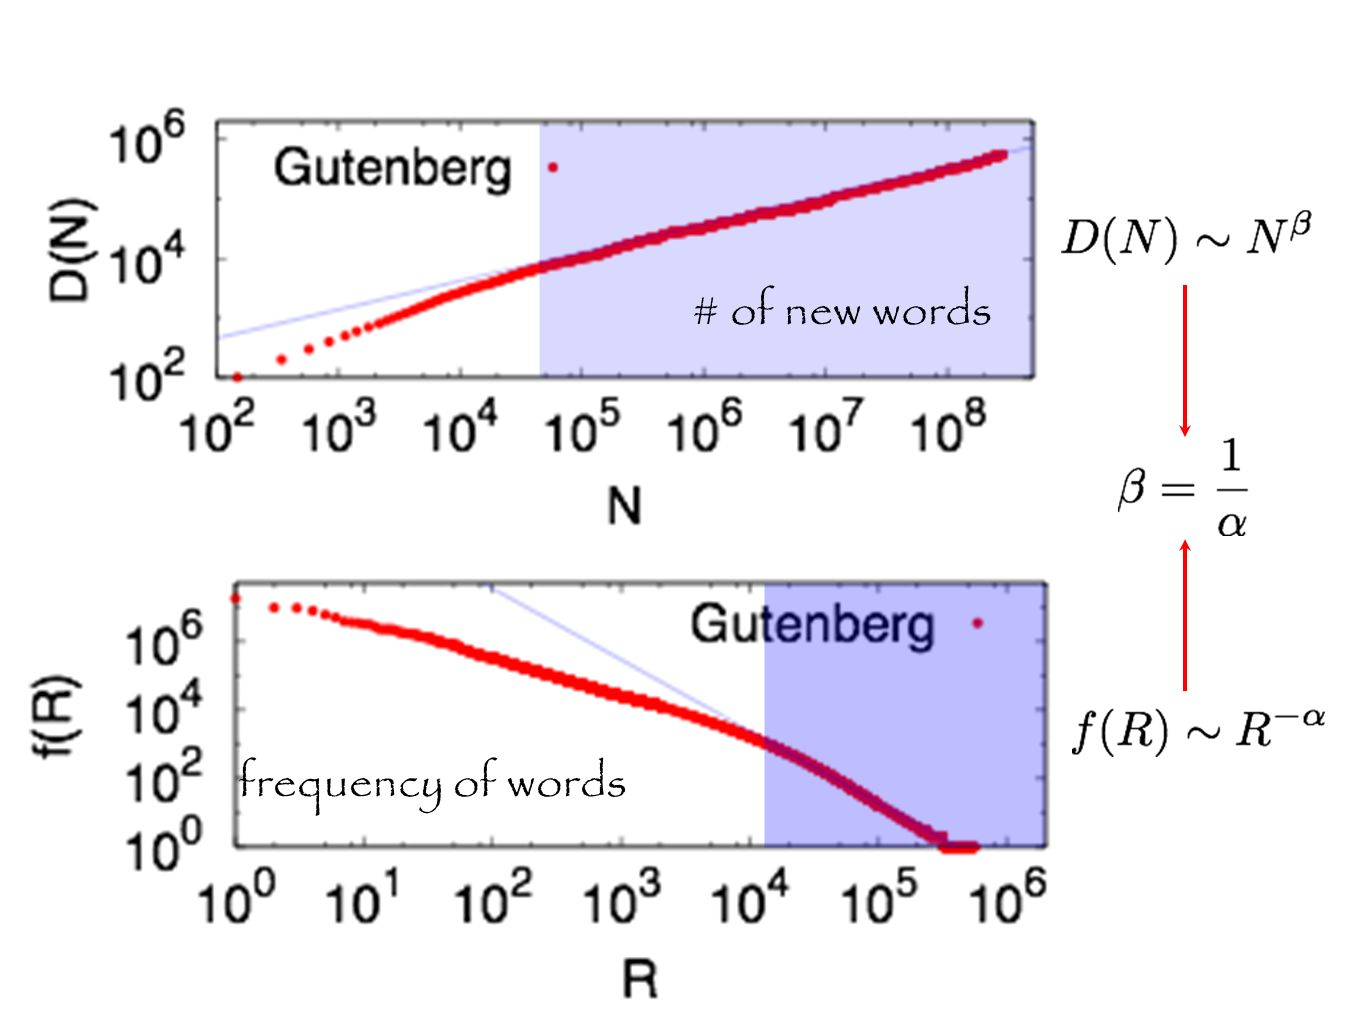 # of new words frequency of words